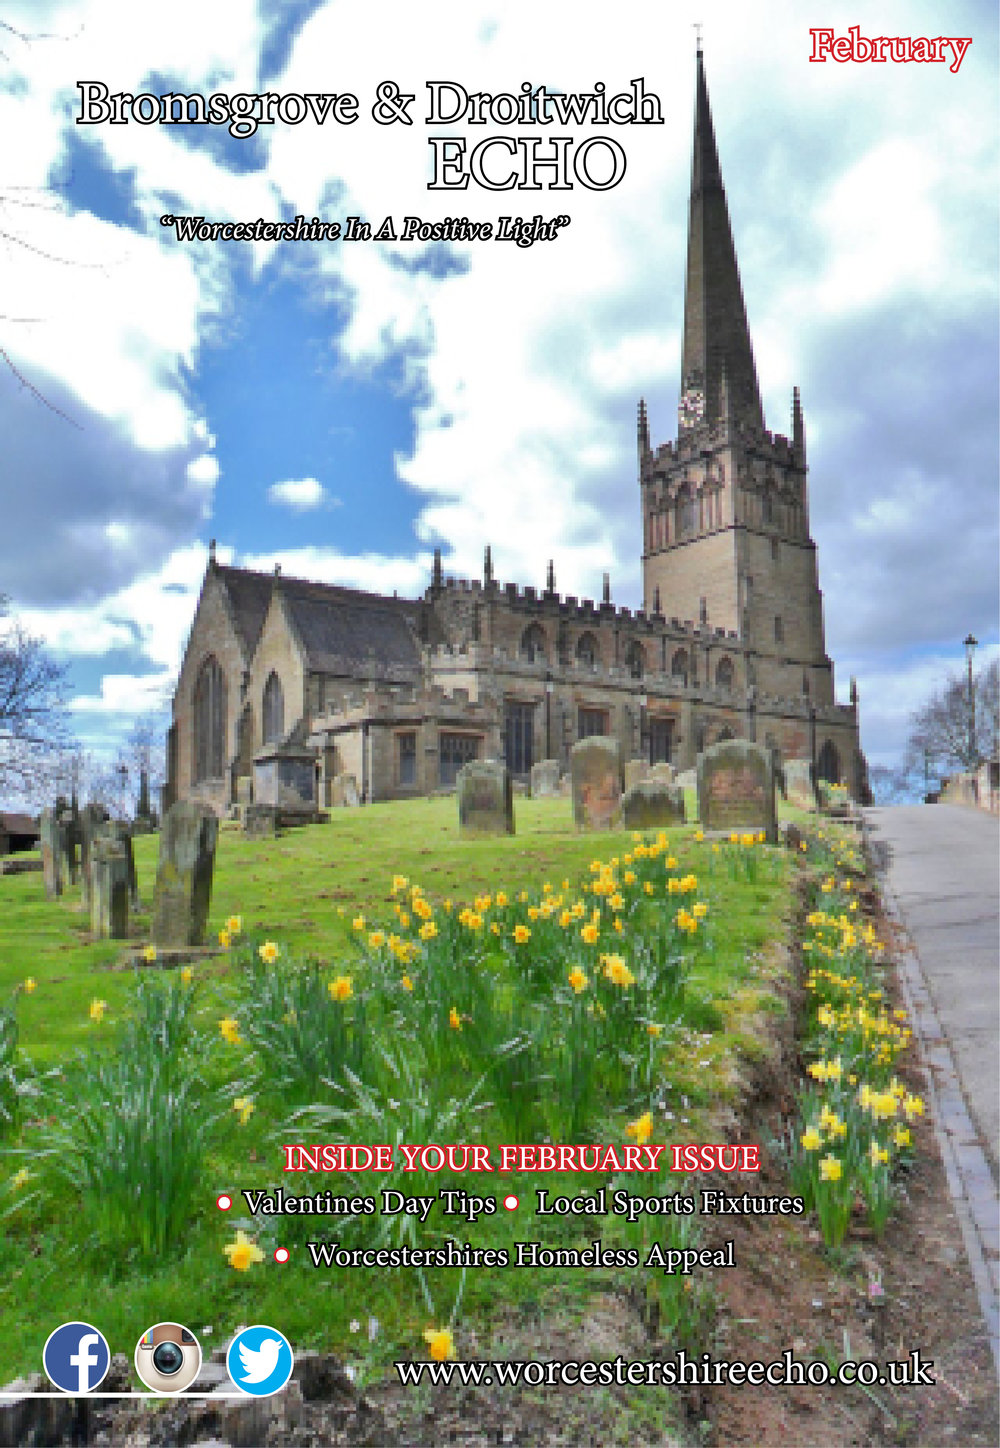 The February Edition - The New Look Bromsgrove & Droitwich Echo is now out!